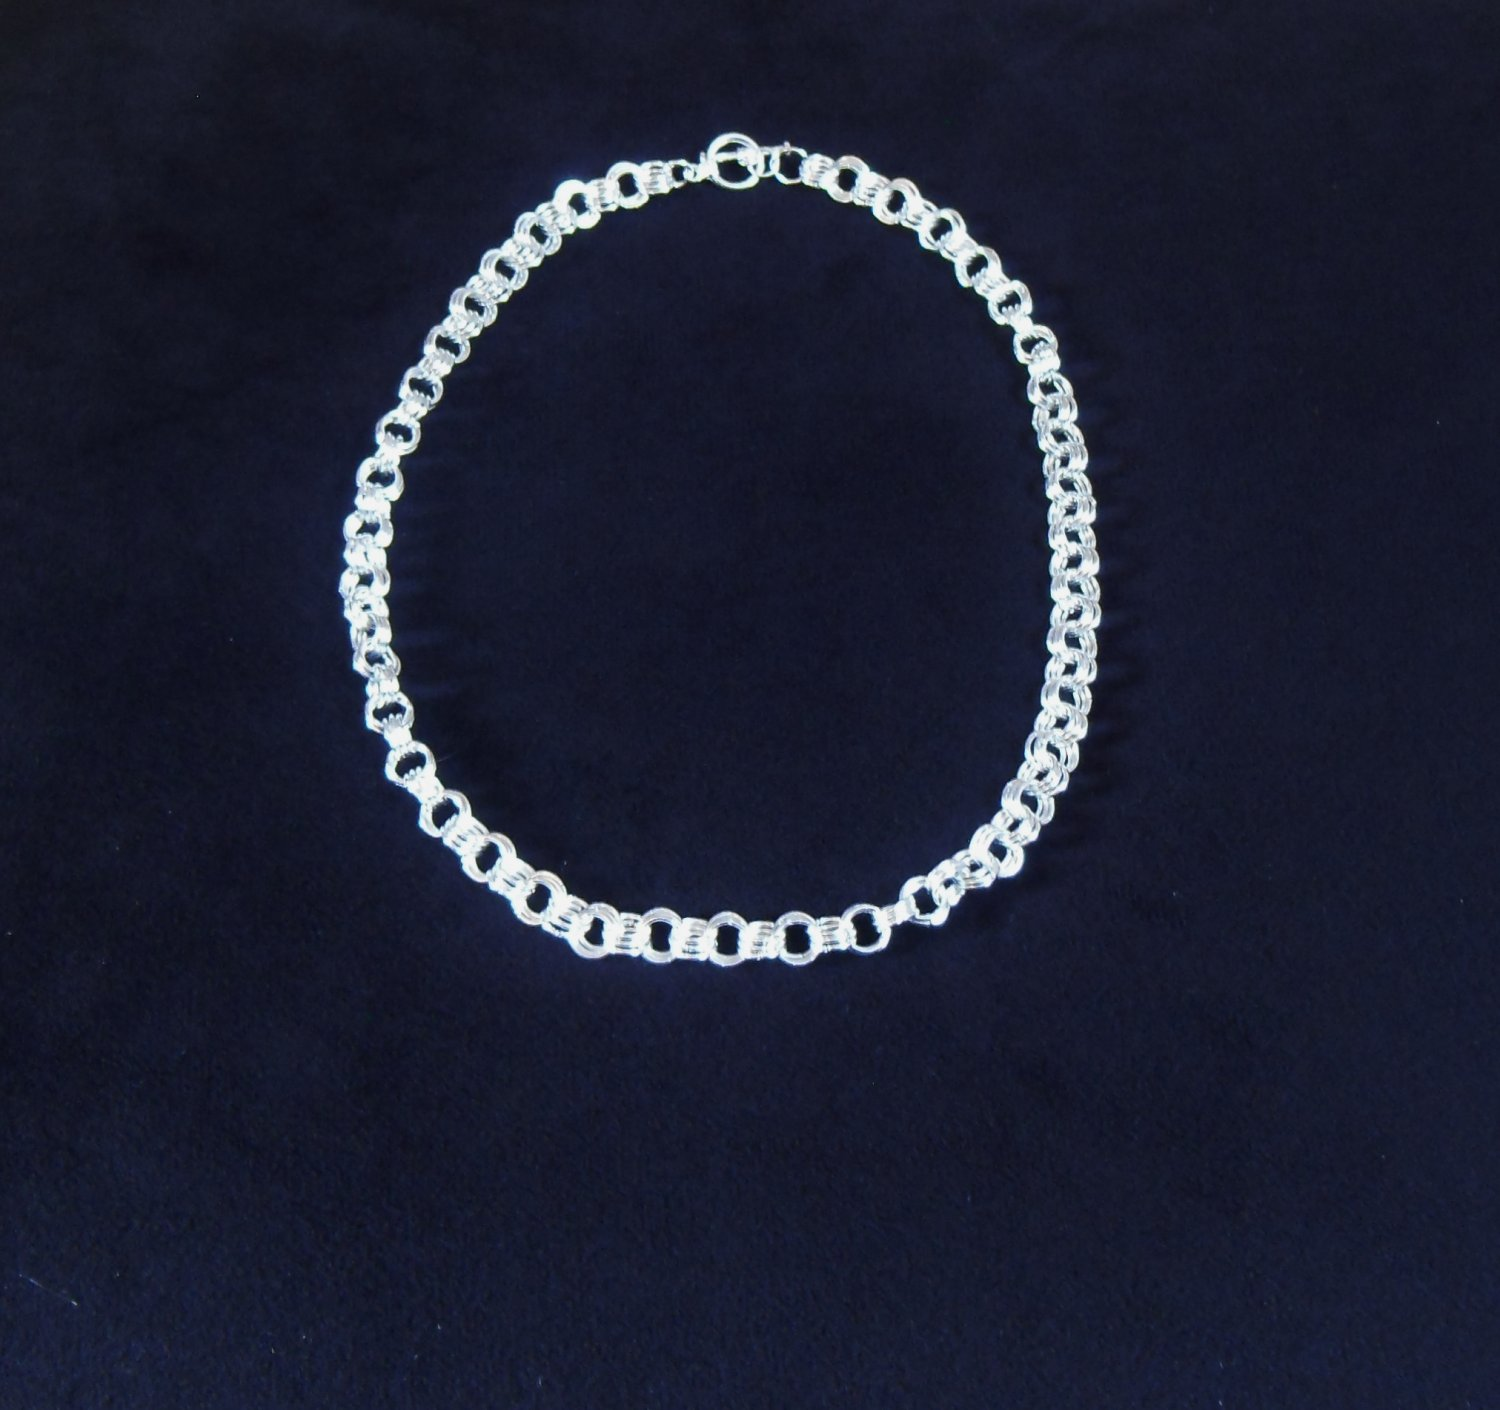 3x3 chainmaille necklace